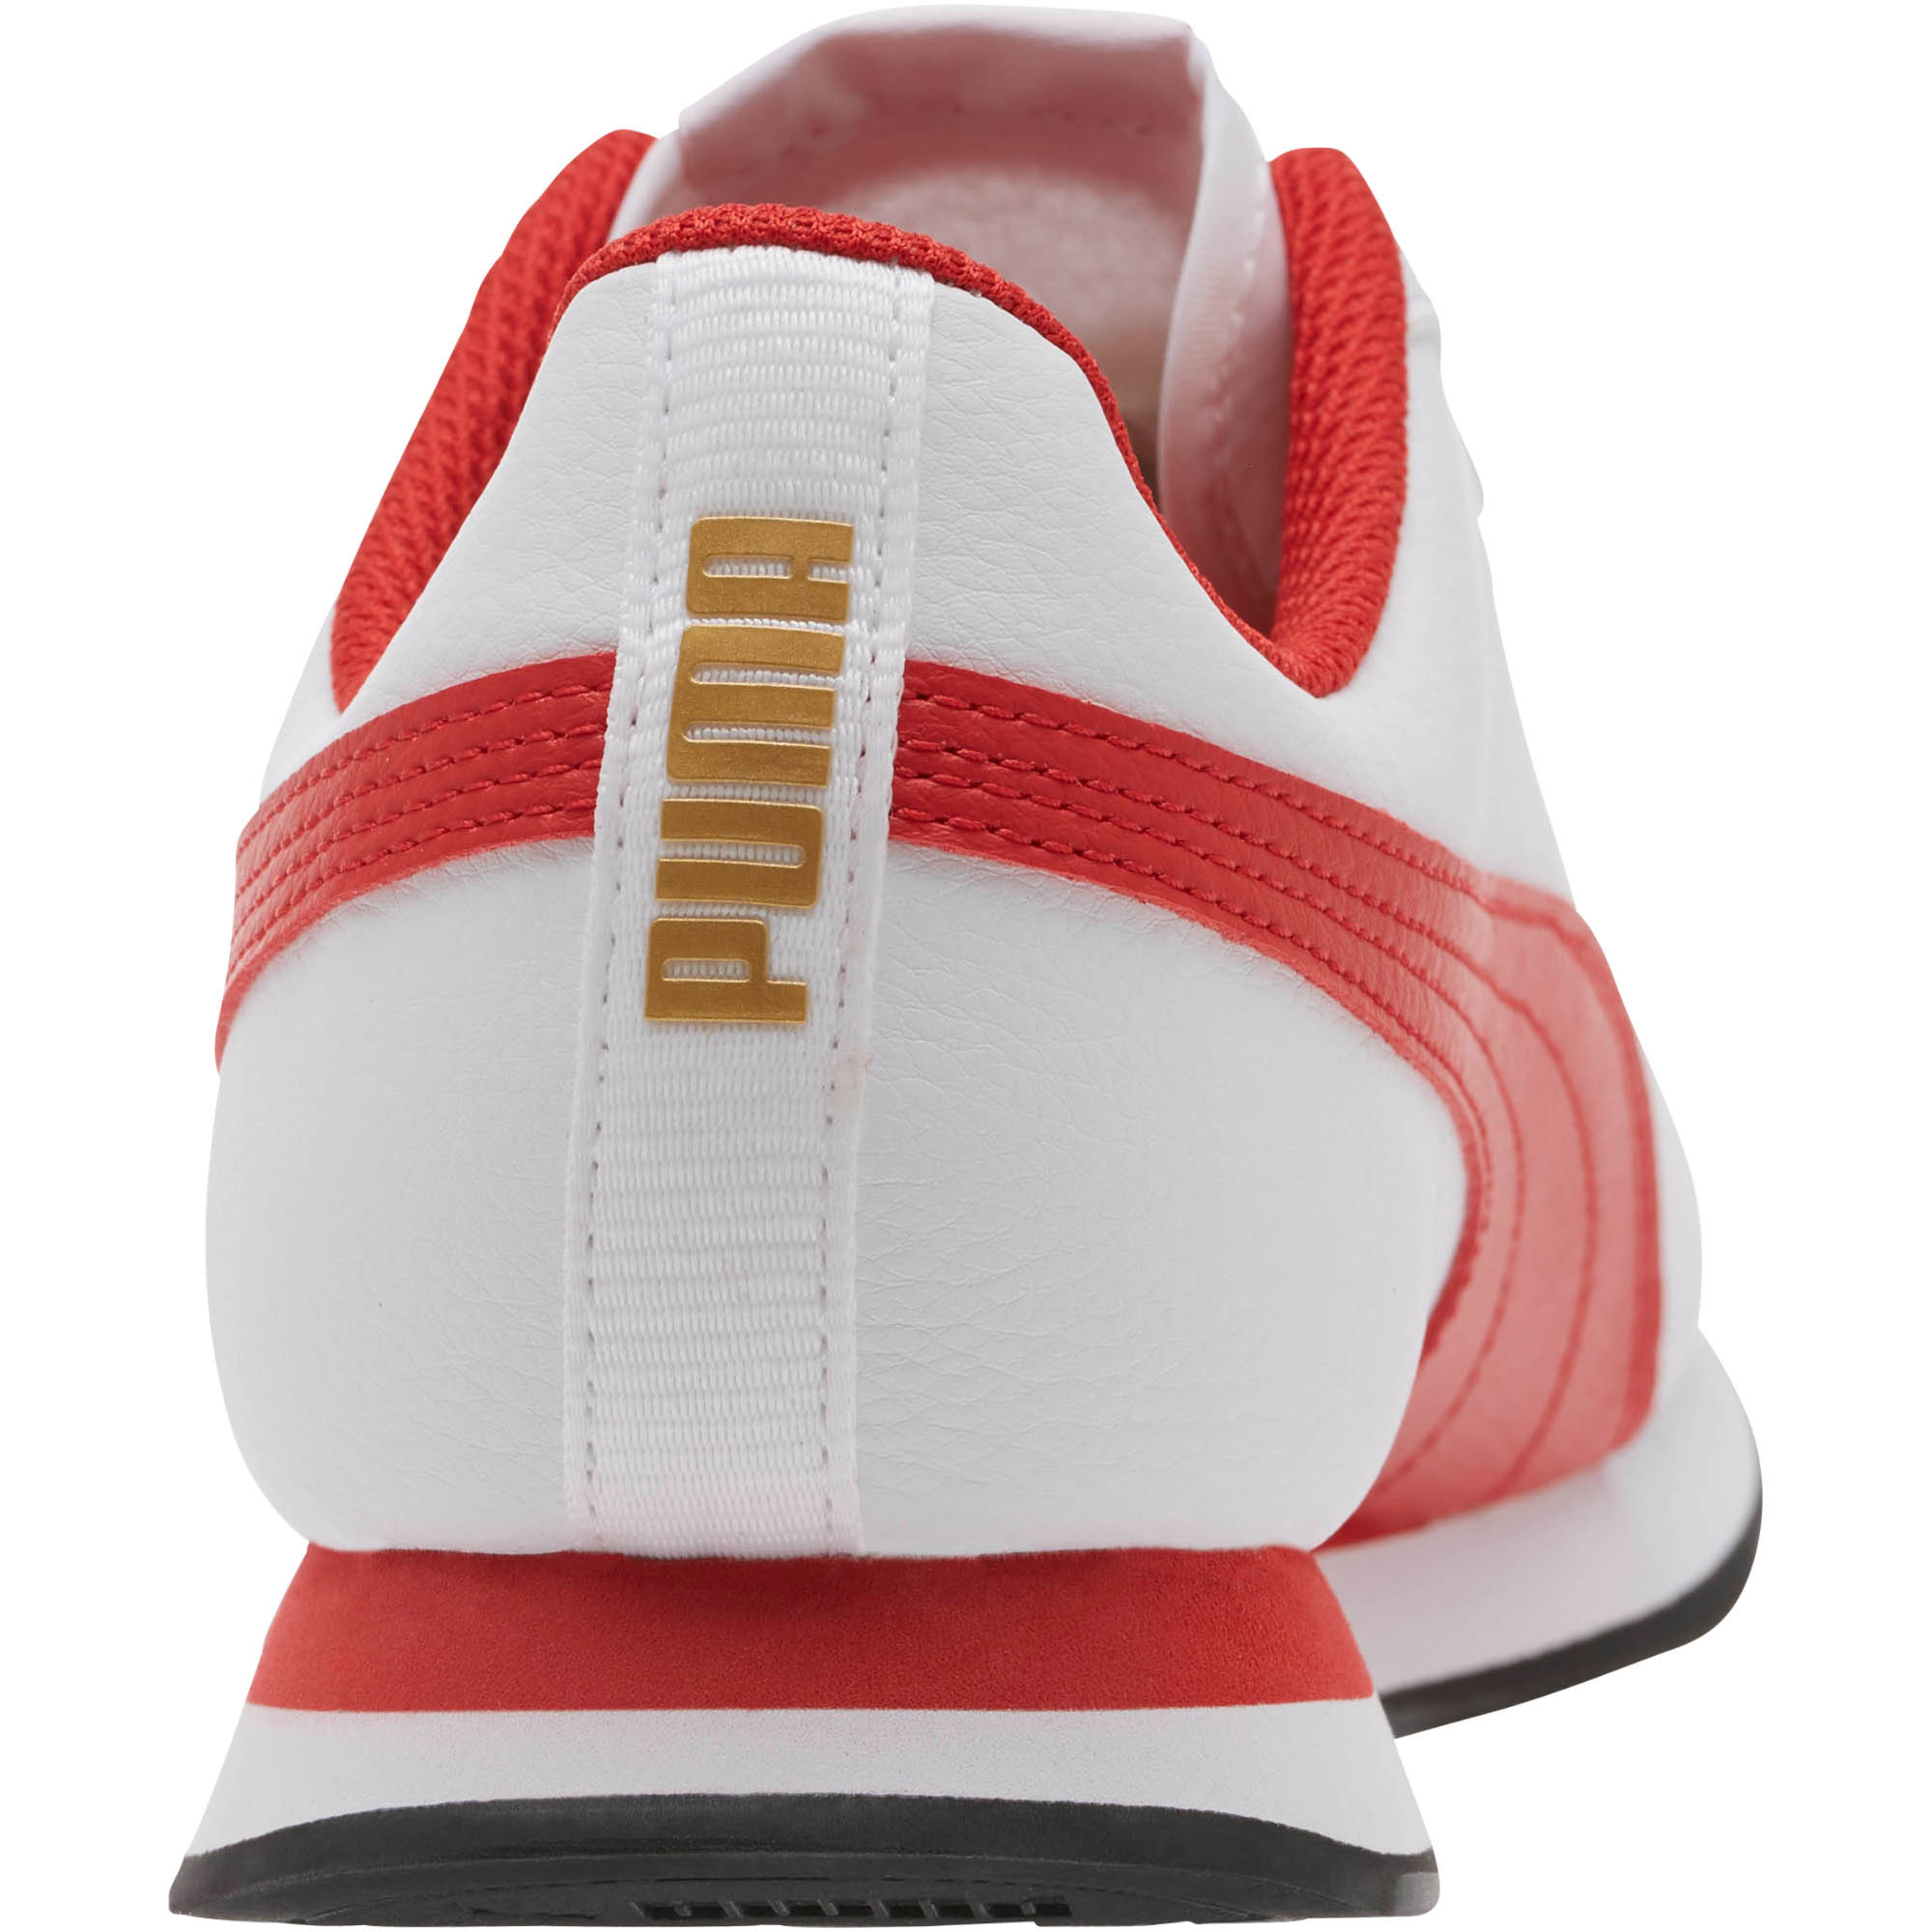 PUMA-Turin-II-Men-039-s-Sneakers-Men-Shoe-Basics thumbnail 29